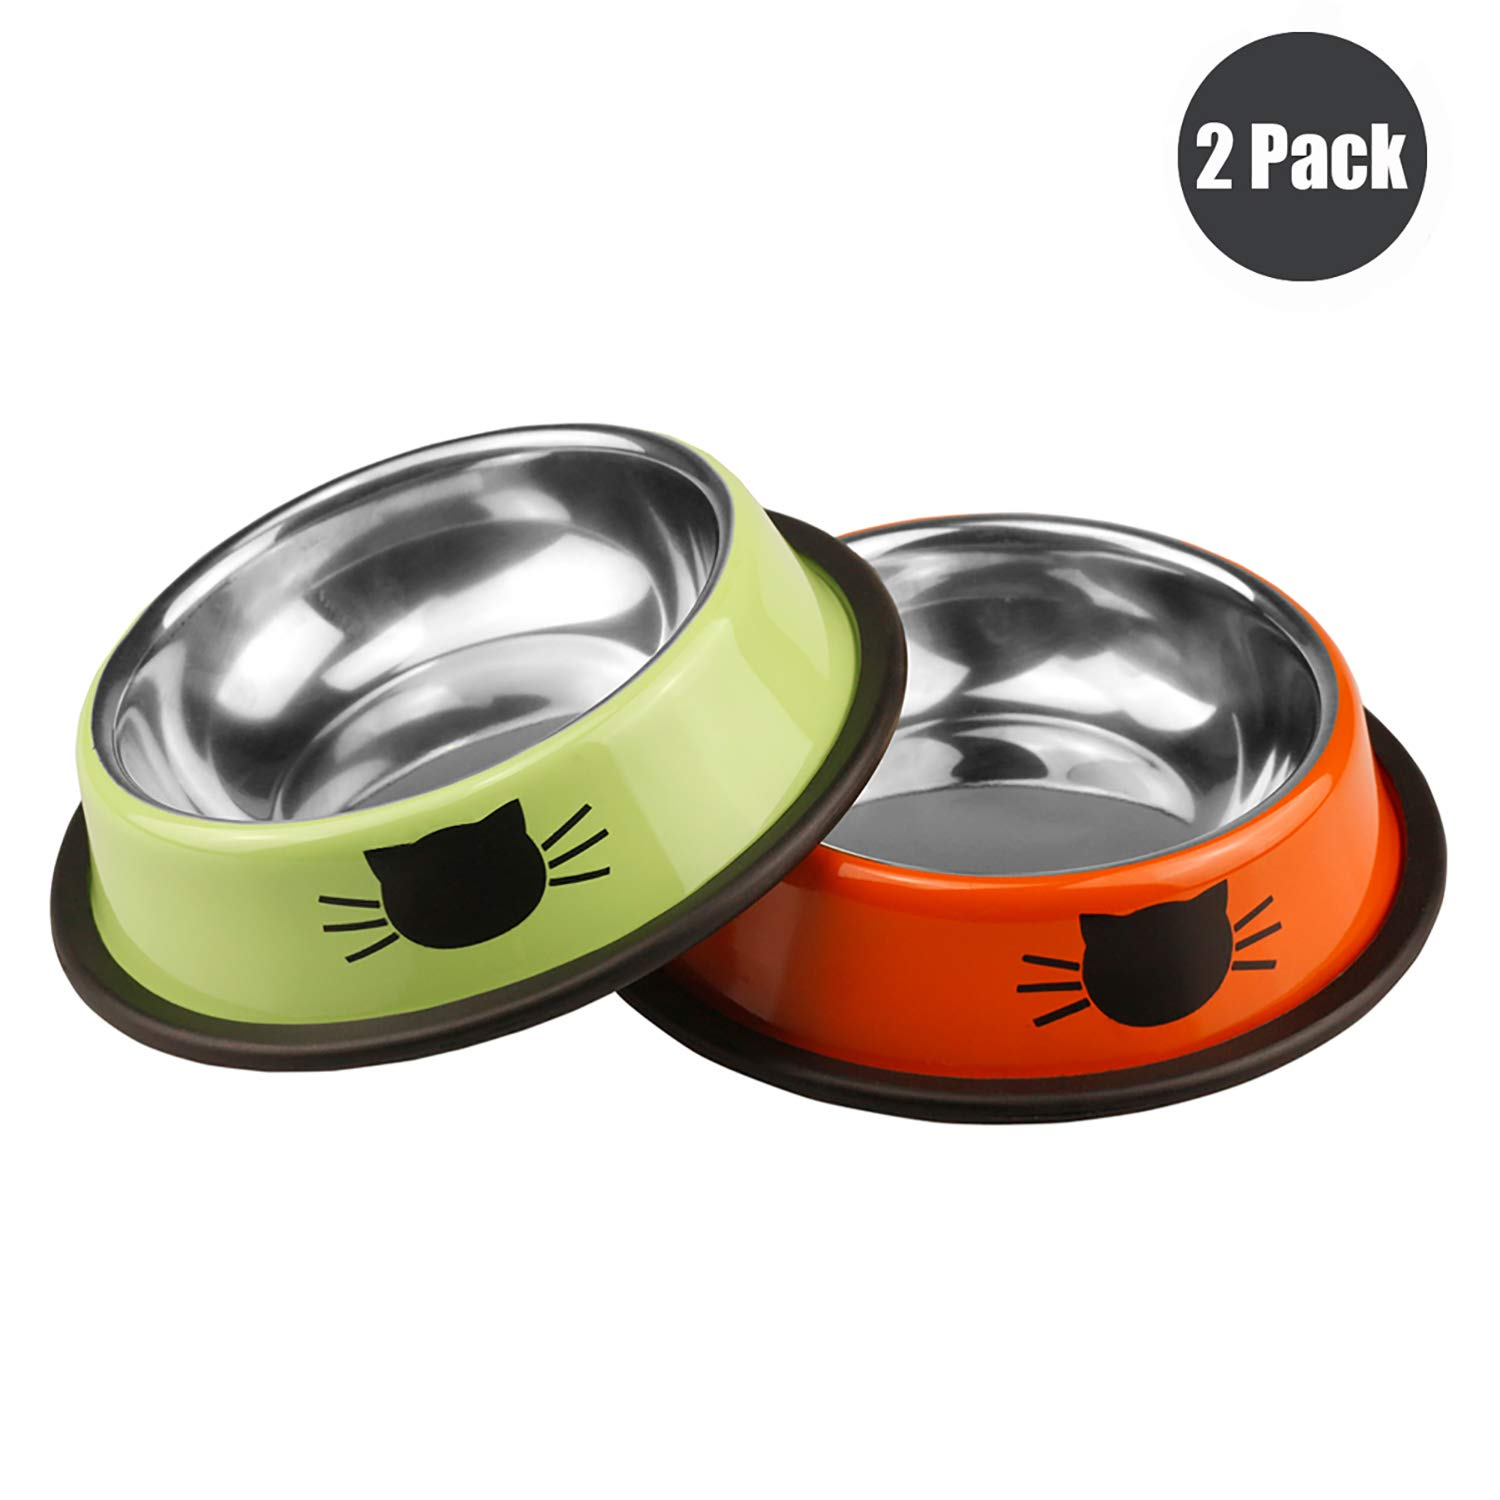 Ureverbasic Cat Bowls Stainless Steel Dog Bowl 8oz for Small Pets Puppy Kitten Rabbit Non-Skid Cat Food Bowls Easy to Clean Durable Cat Dish for Food and Water